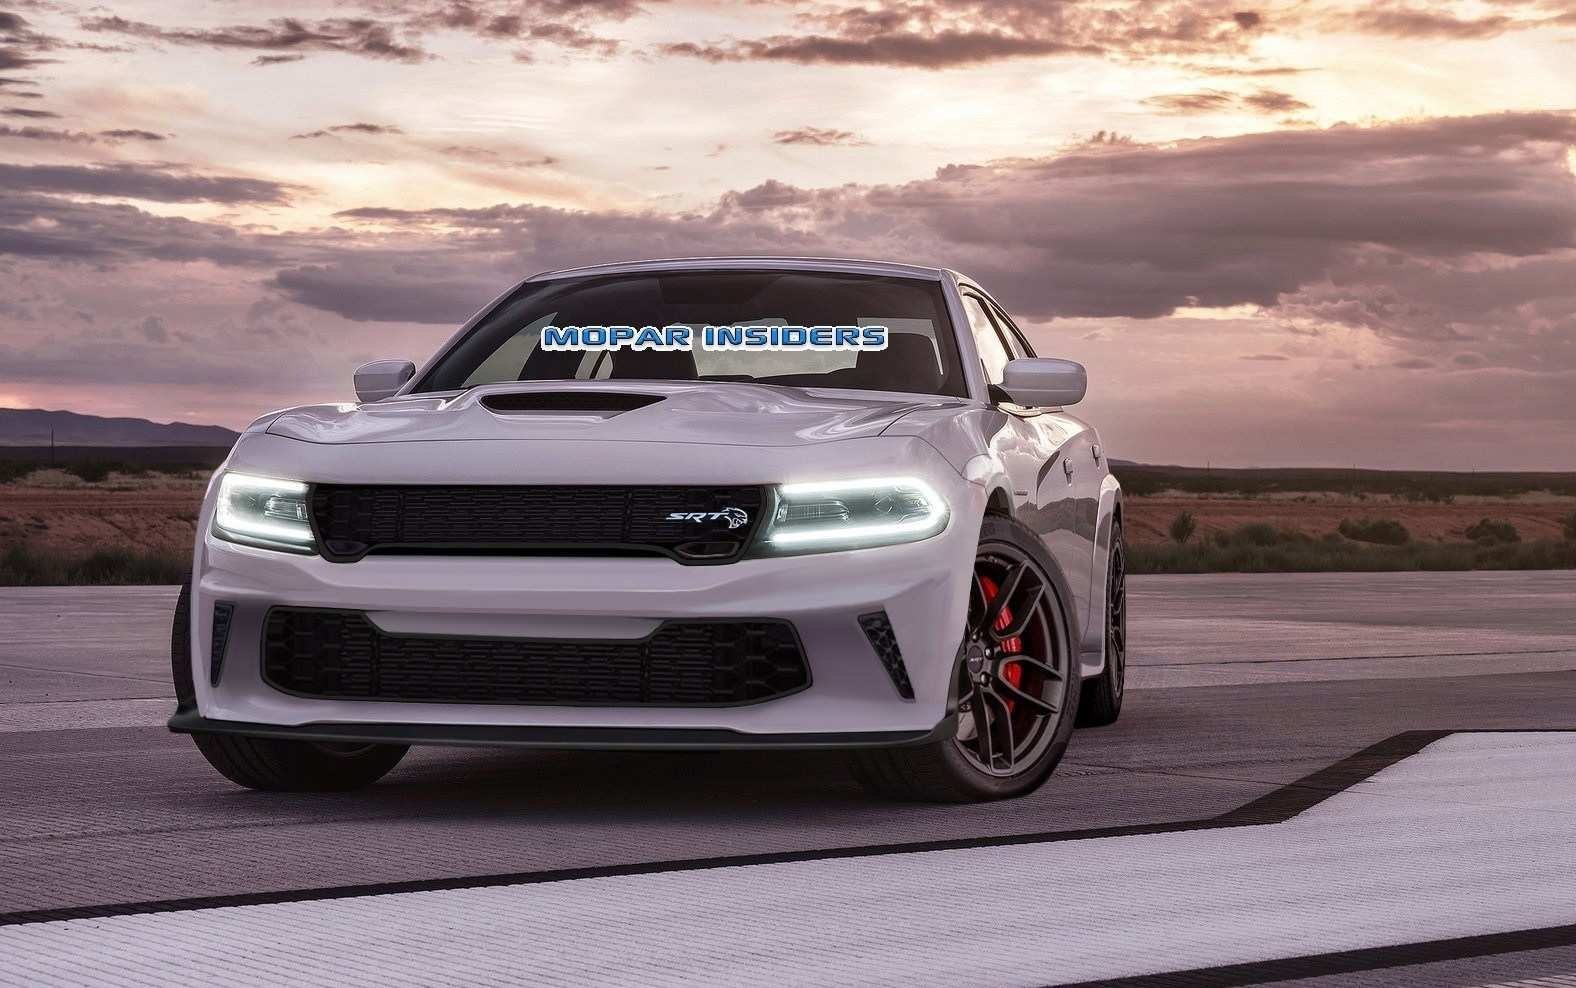 76 Best 2020 Dodge Charger Srt8 Hellcat Price And Release Date